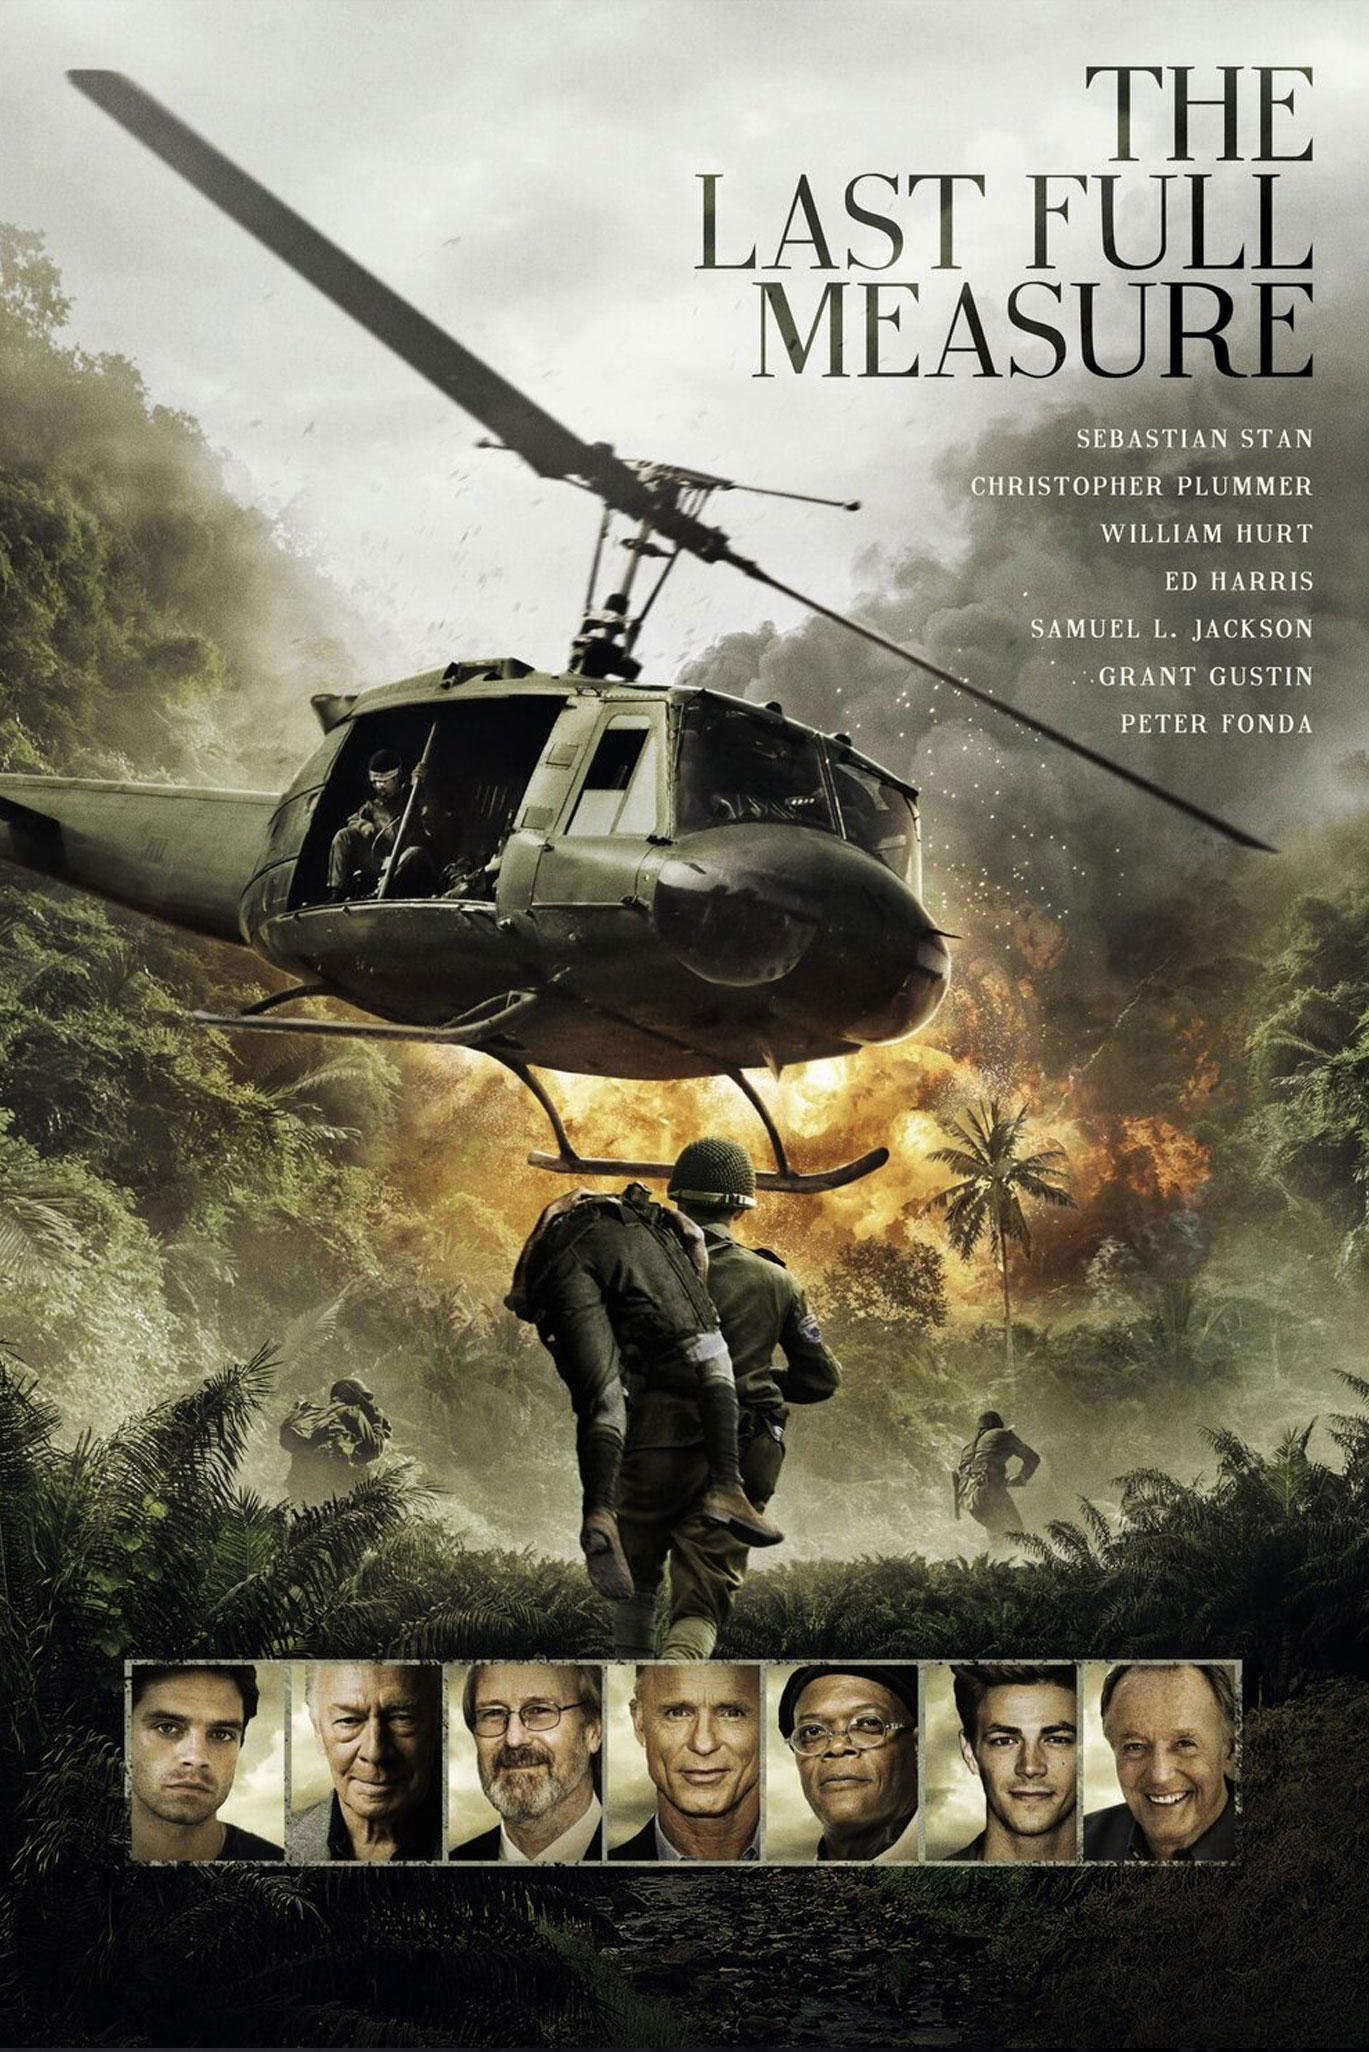 REVIEW: THE LAST FULL MEASURE